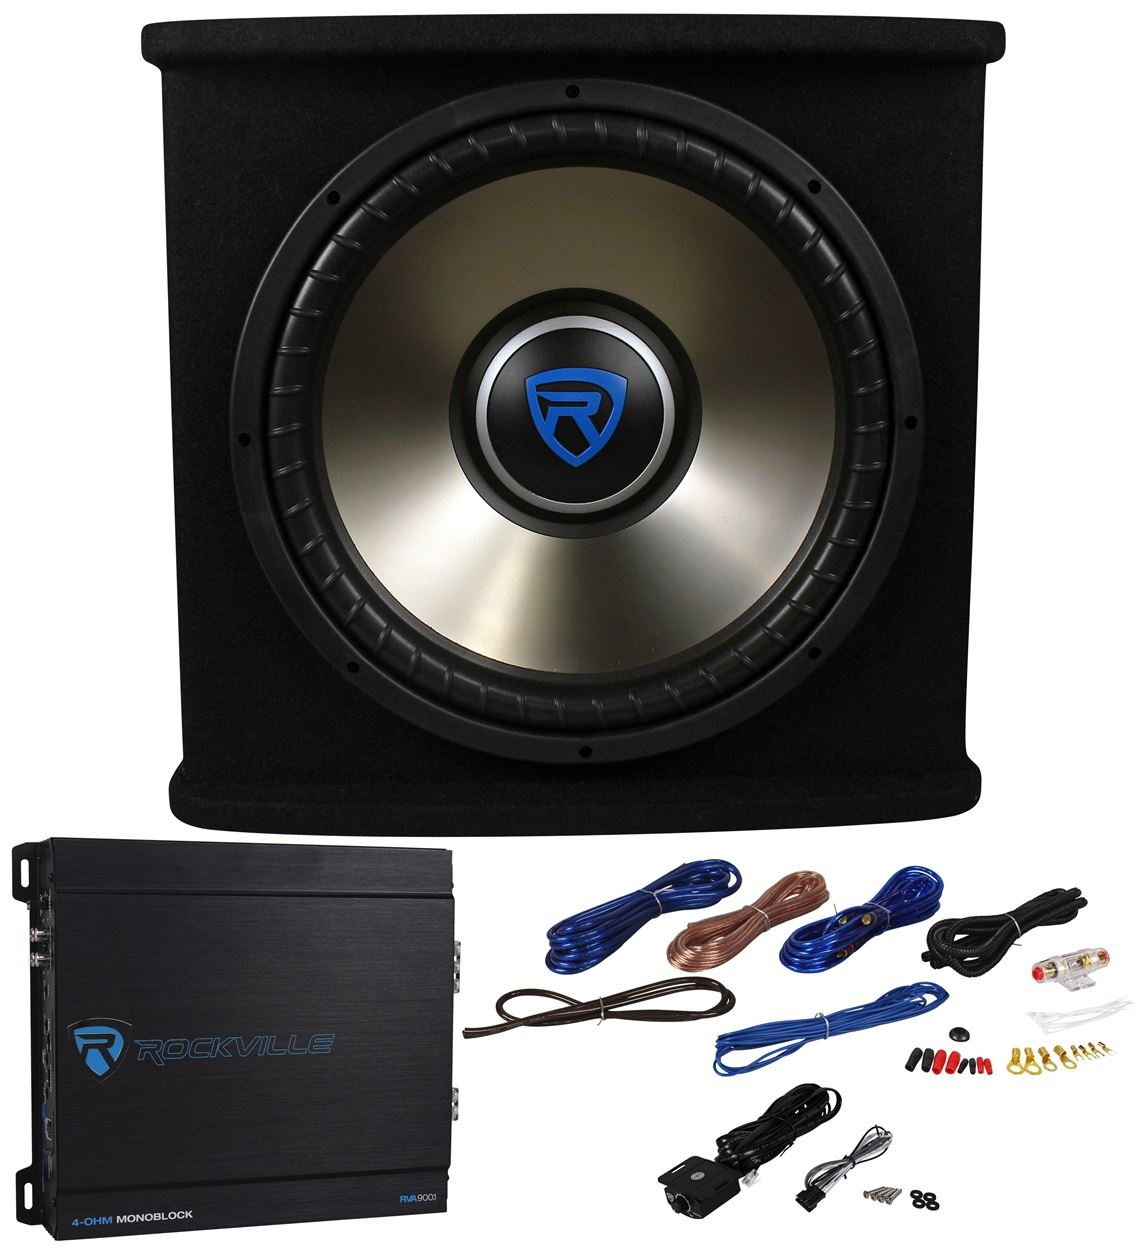 Rockville Rvspl122 Dual 12 1800w Car Subwoofer Sub Box Boss Kit2 8 Gauge Complete Amplifier Wiring Kit Pair Vminnovations Amp Wires Bass Package Electronics